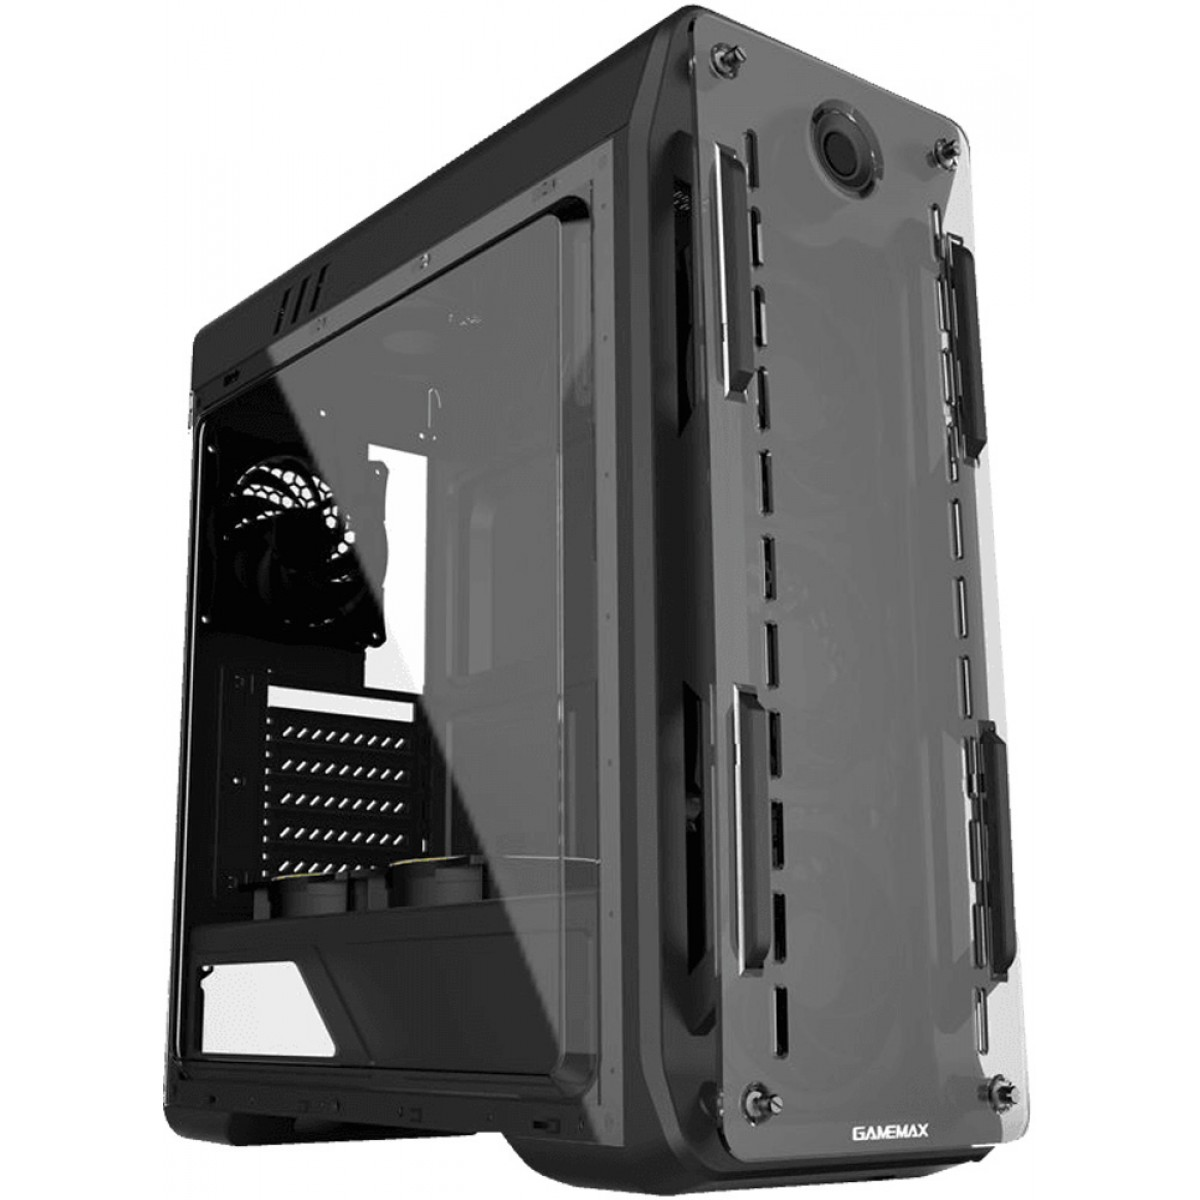 Gabinete Gamer Gamemax Optical G510, Mid Tower, Com 3 Fans, Painel Lateral, Black, S-Fonte